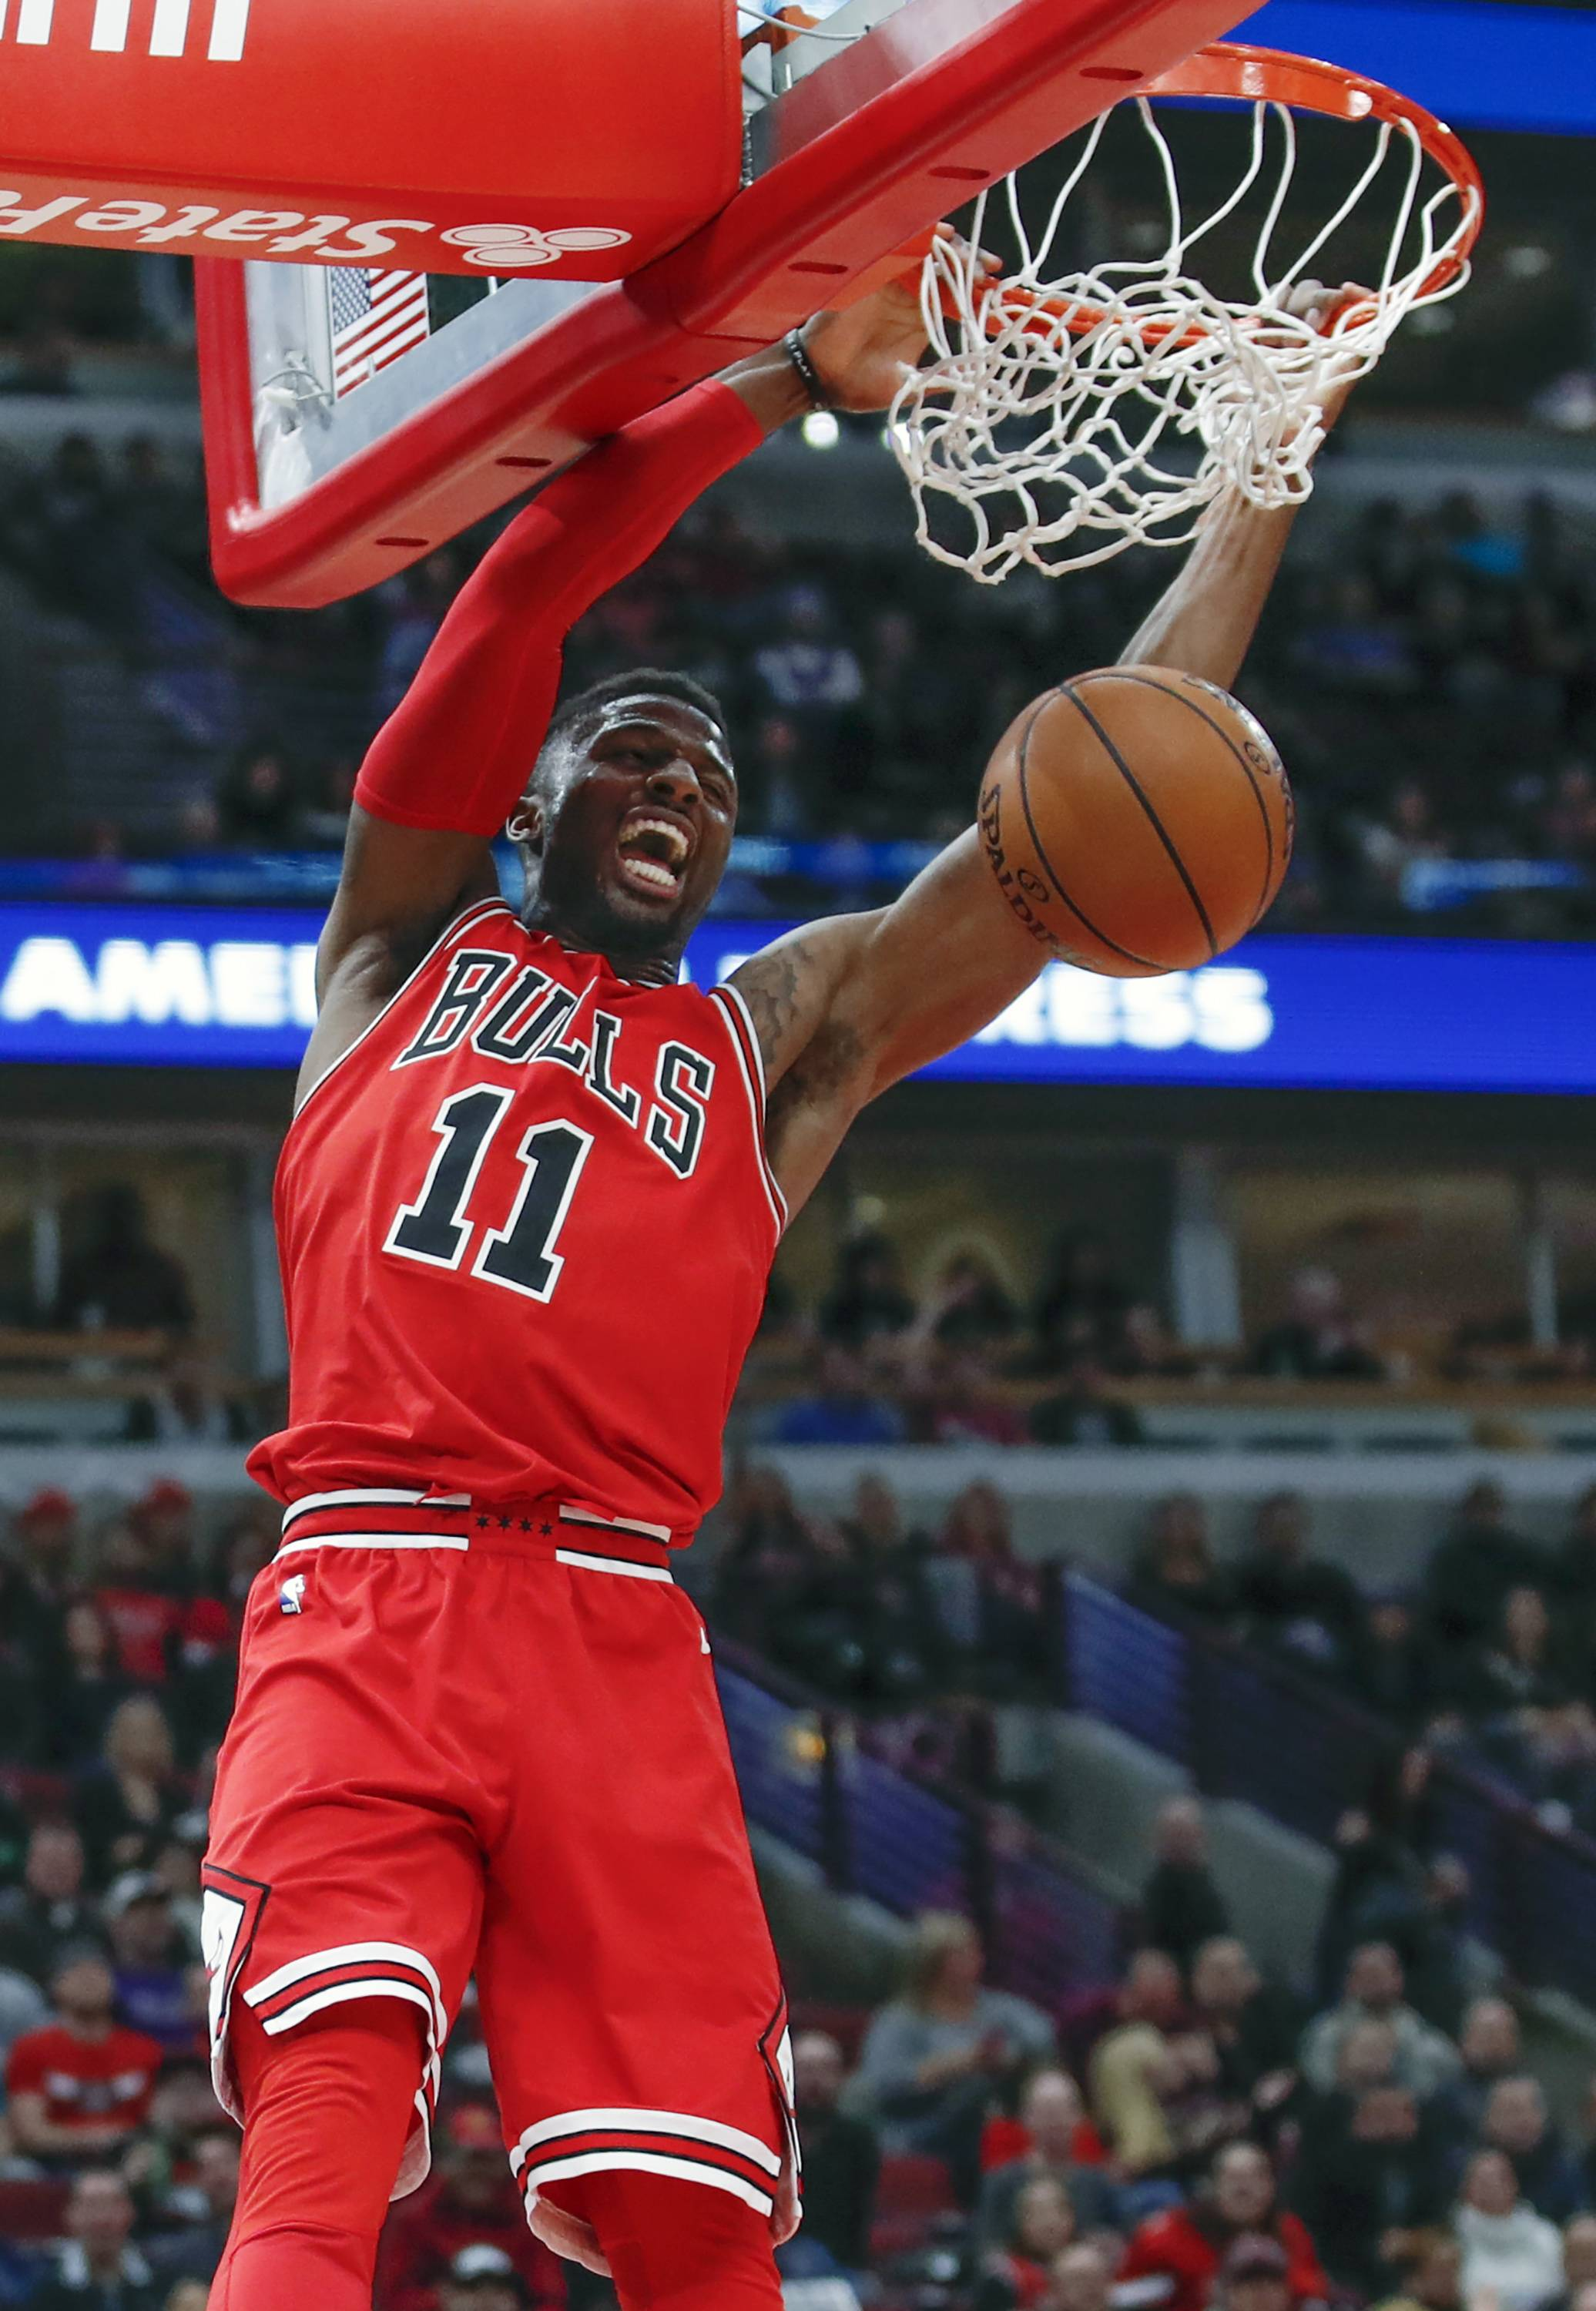 Chicago Bulls guard David Nwaba dunks against the New York Knicks during the second half of an NBA basketball game, Saturday, Dec. 9, 2017, in Chicago. (AP Photo/Kamil Krzaczynski)